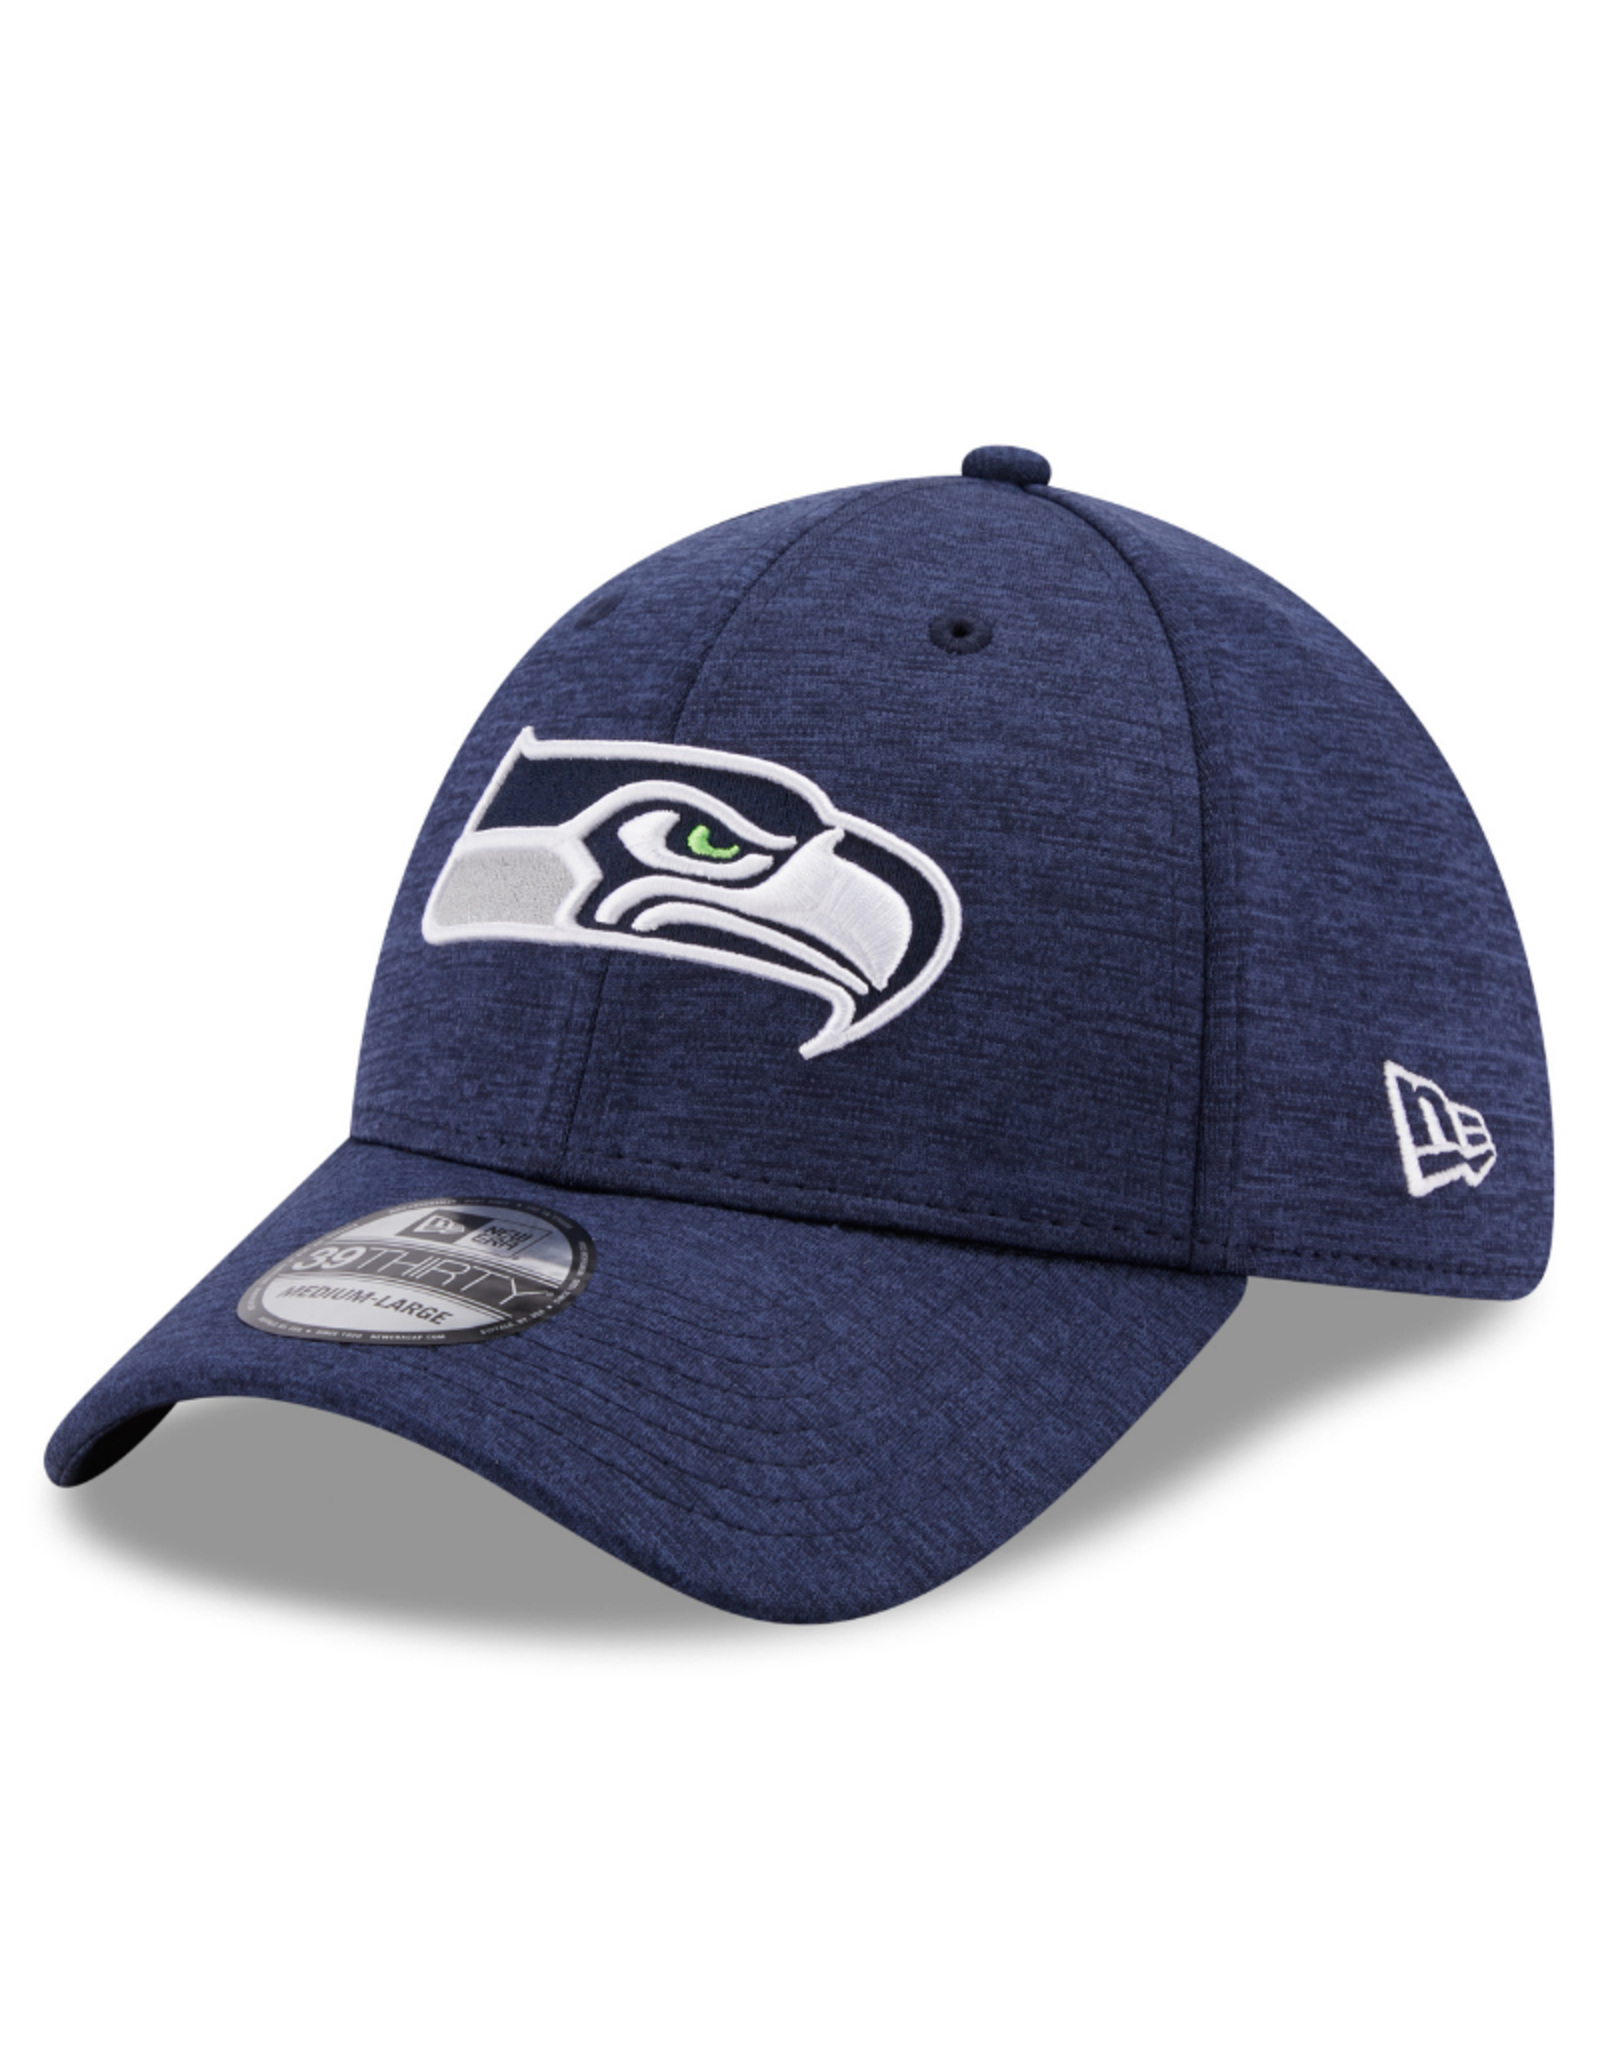 New Era Adult 39THIRTY Shadow B3 Hat Seattle Seahawks Navy